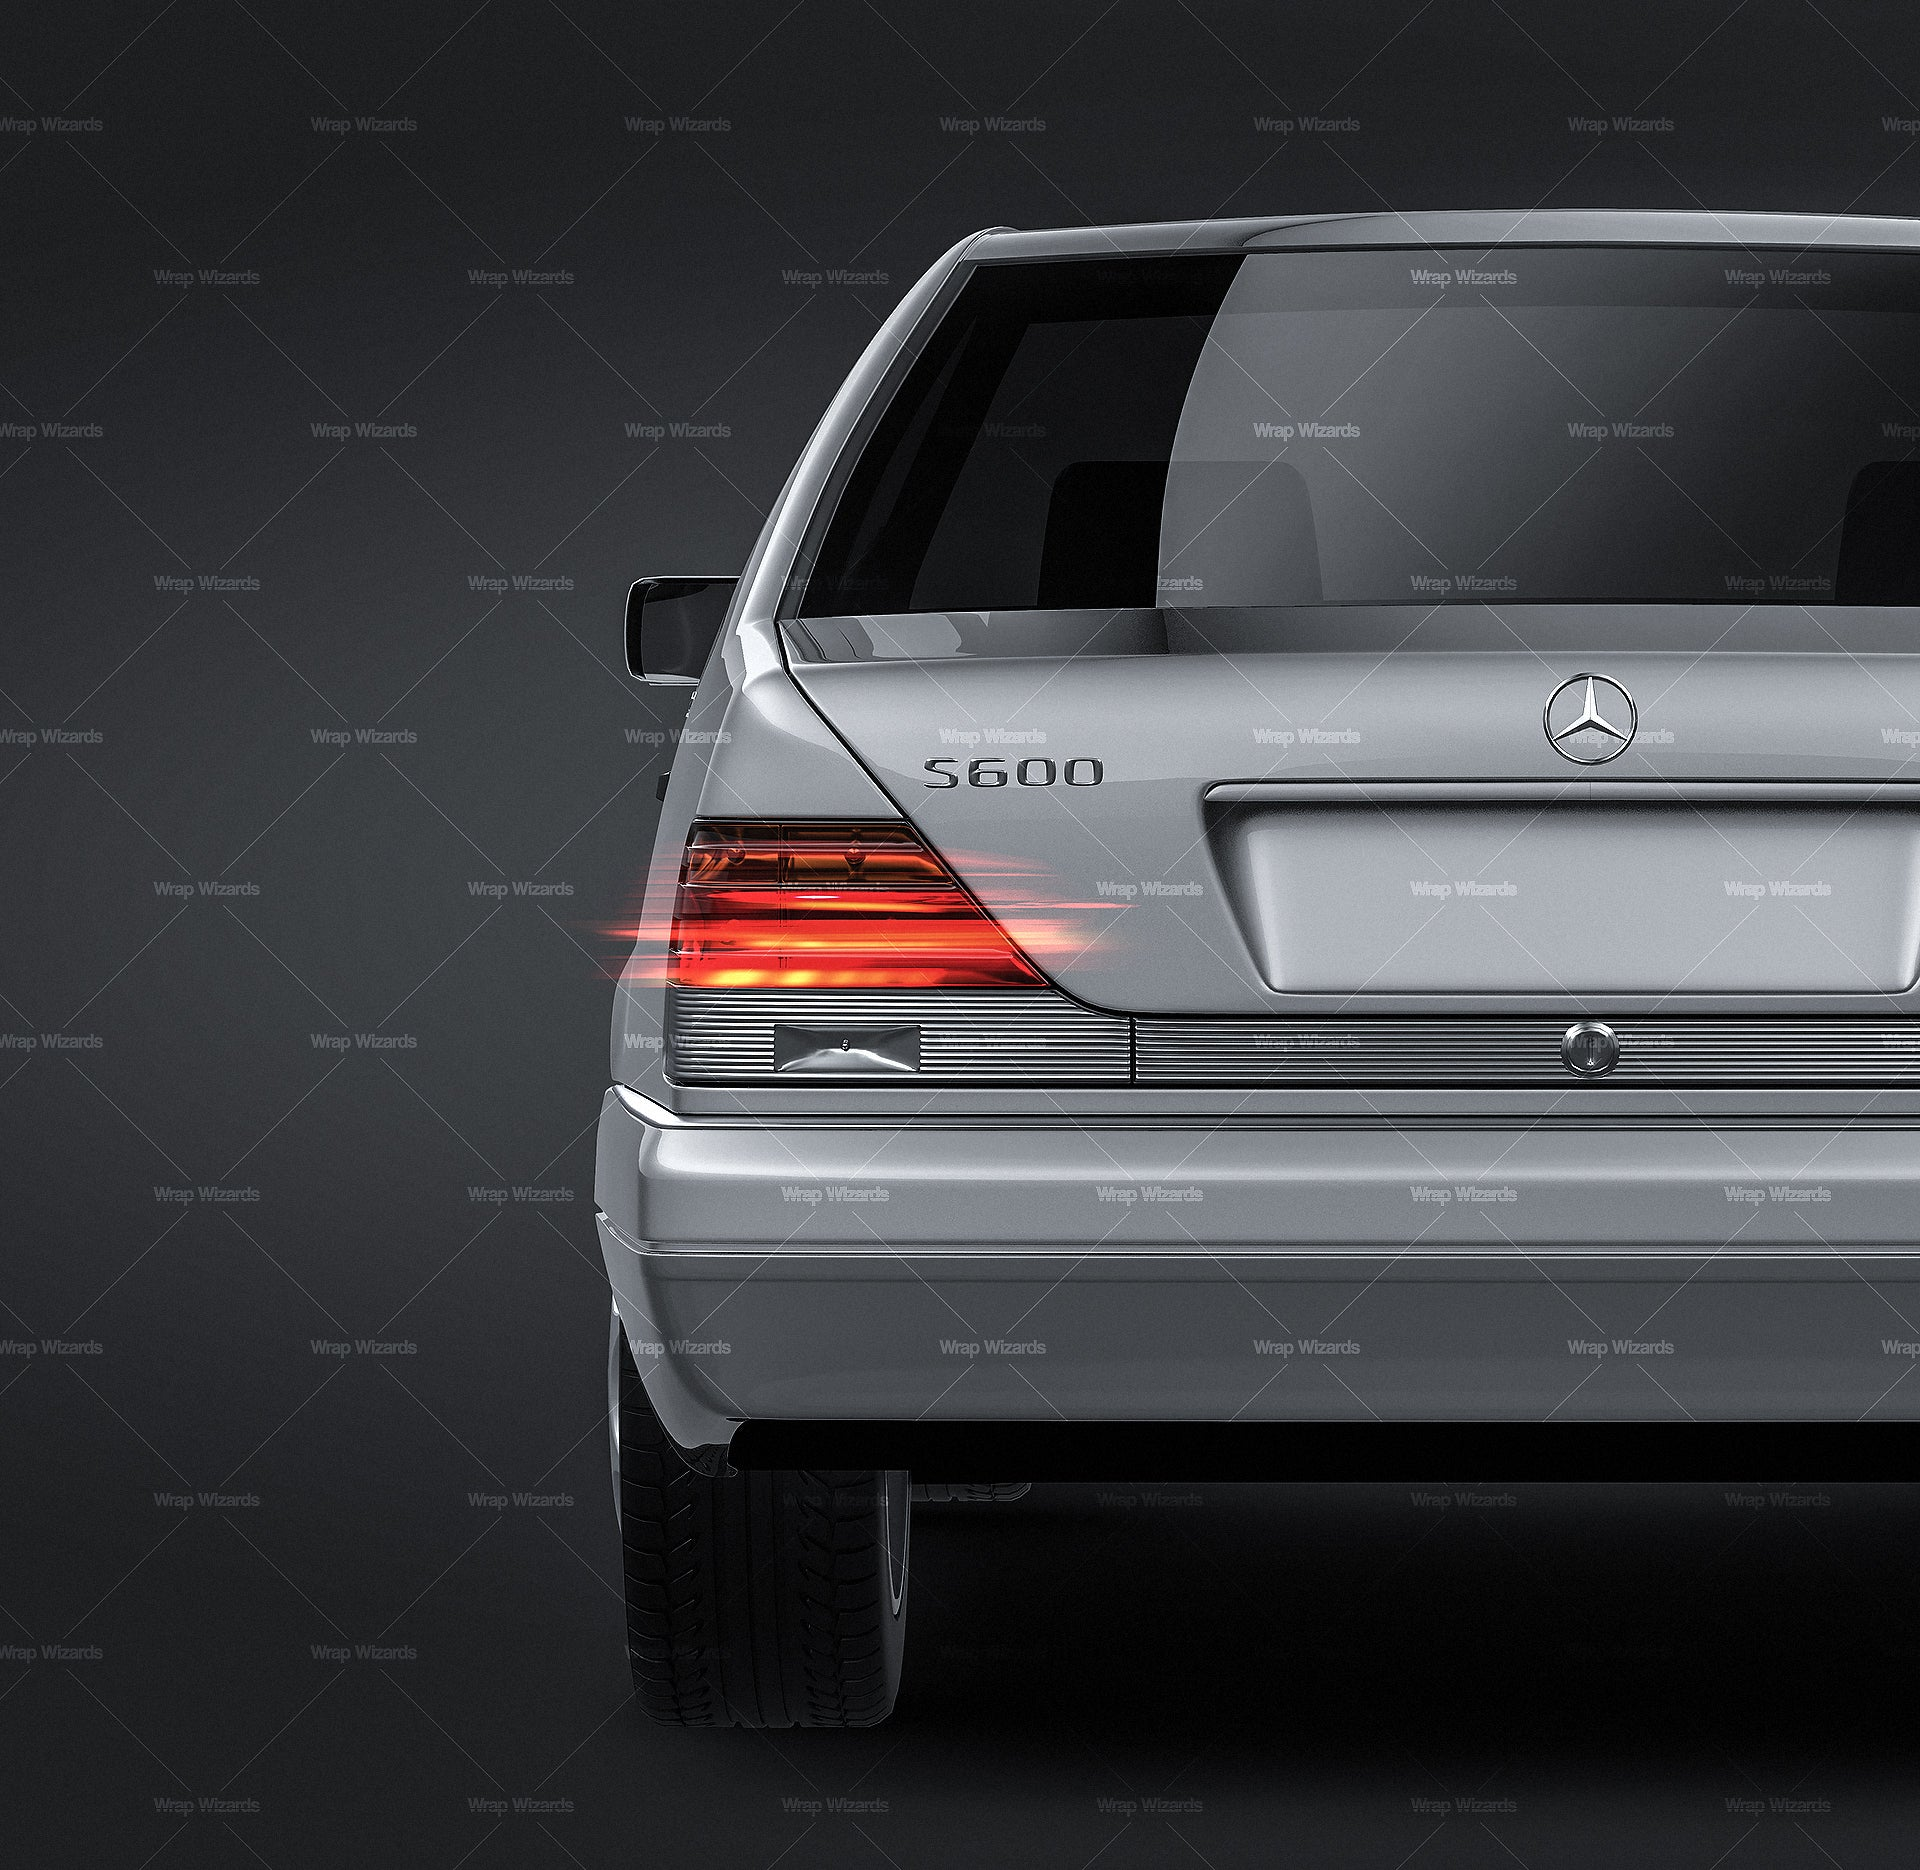 Mercedes-Benz S-Class W140 all sides Car Mockup Template.psd